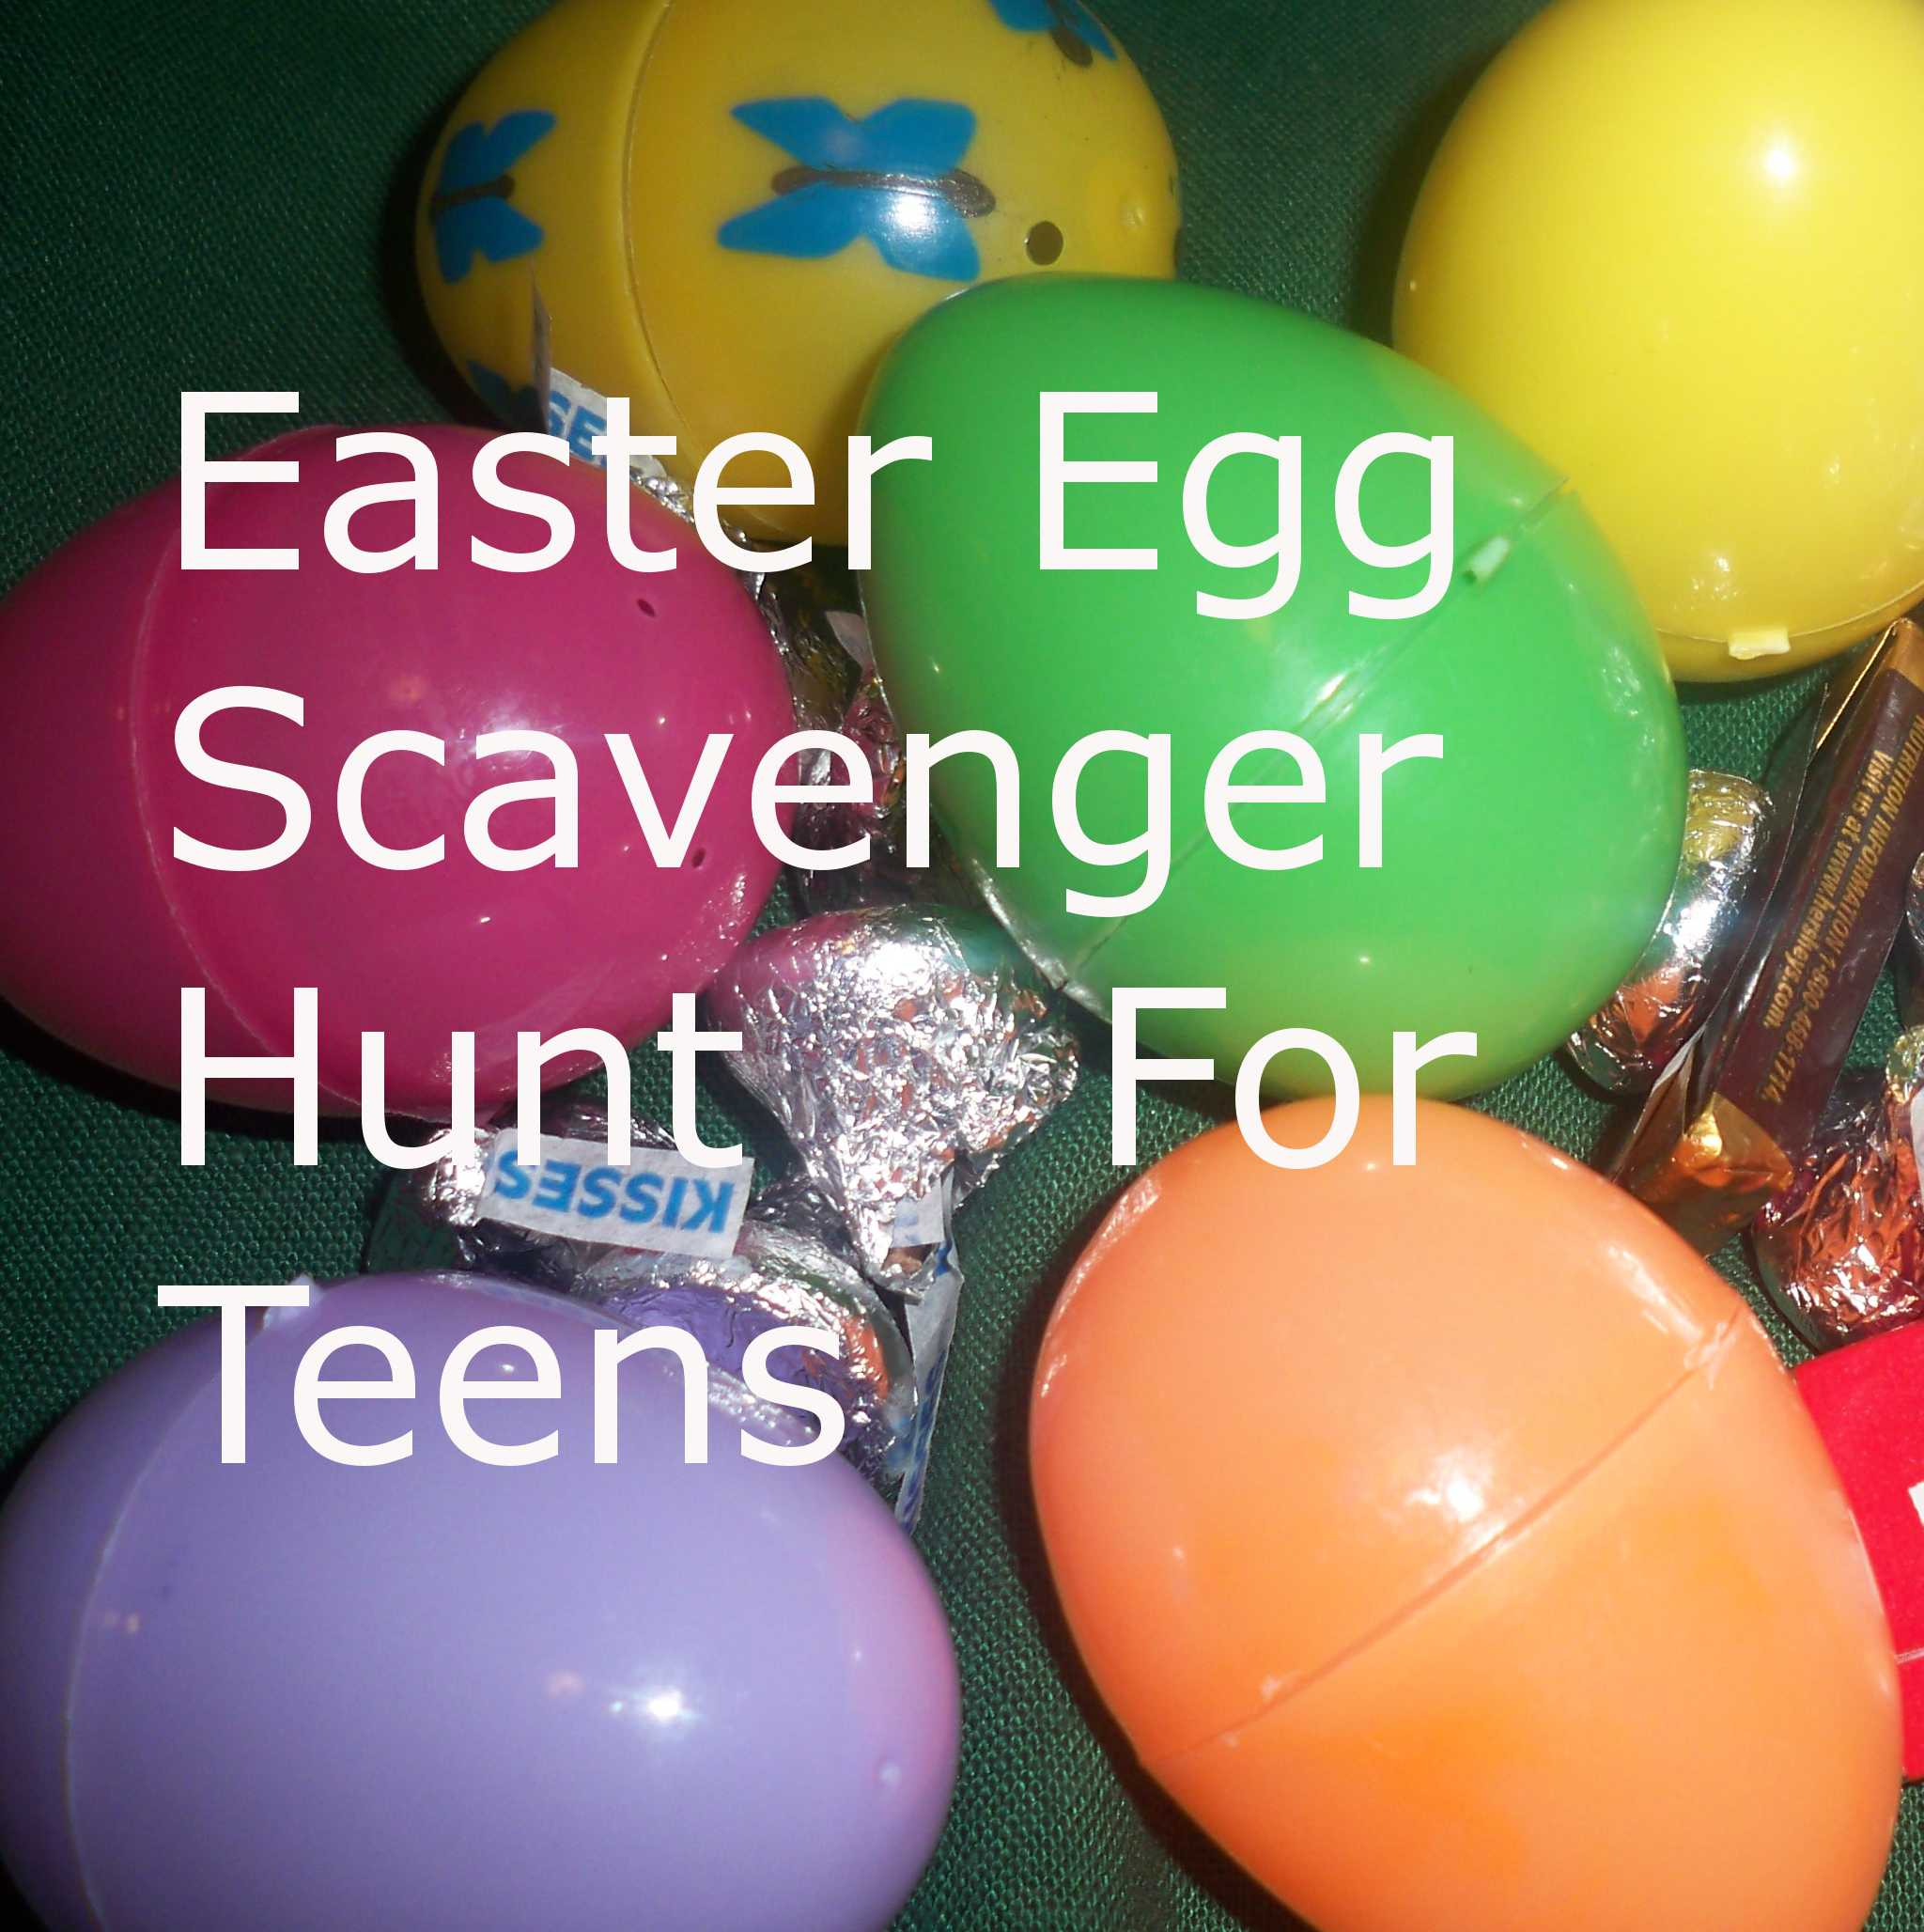 Easter Egg Scavenger Hunt For Teenagers